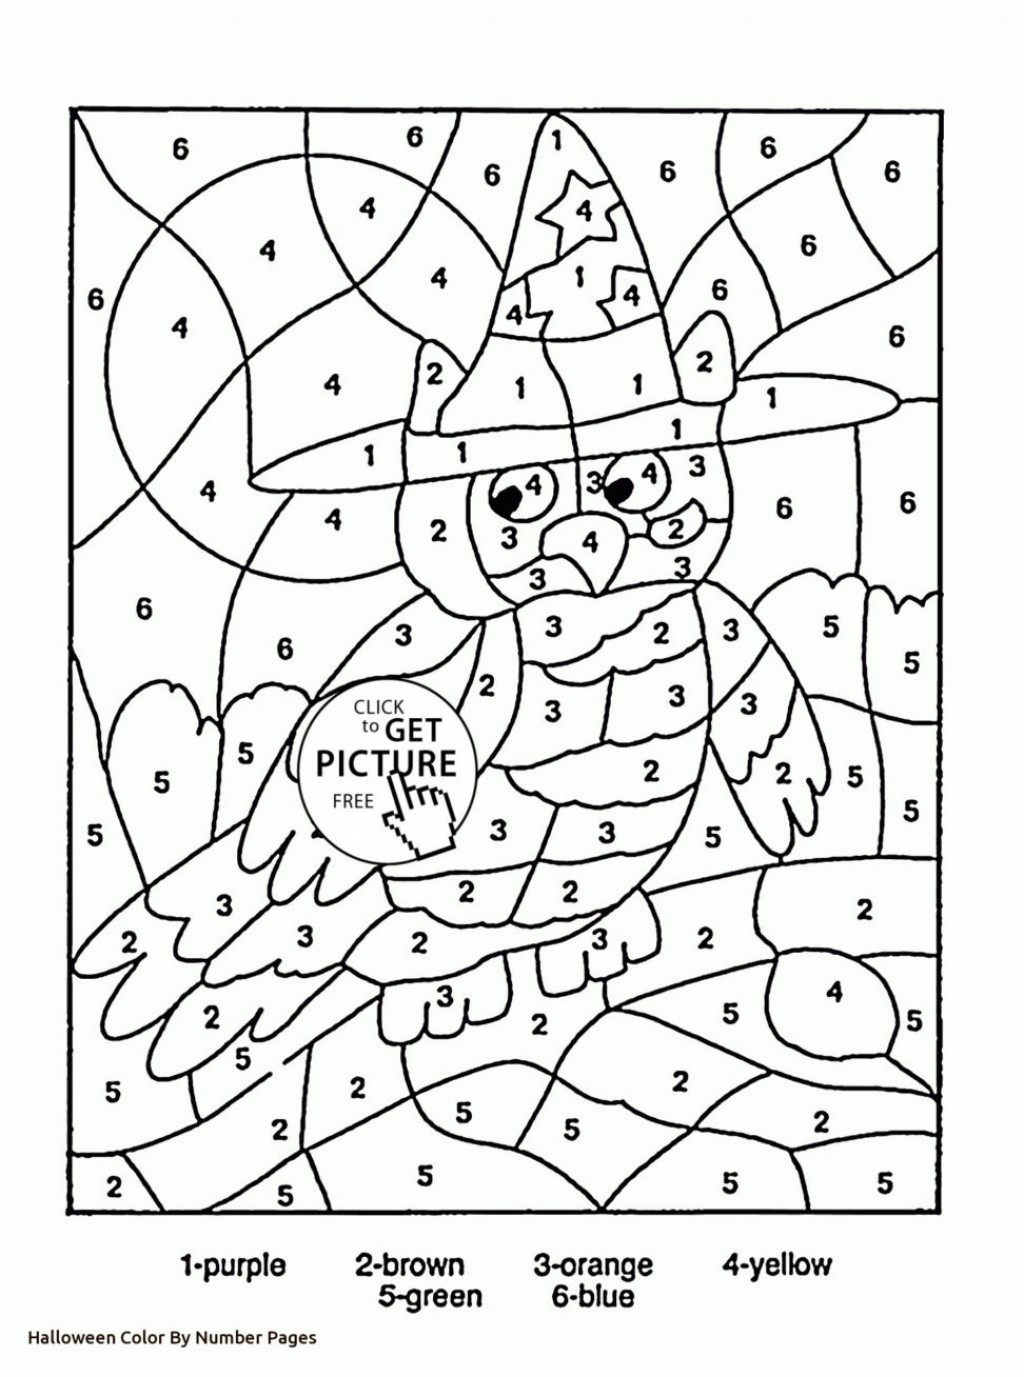 Math Worksheets Colornumber 4Th Grade Coloring Pages Fresh - Free | Printable Color By Number Math Worksheets